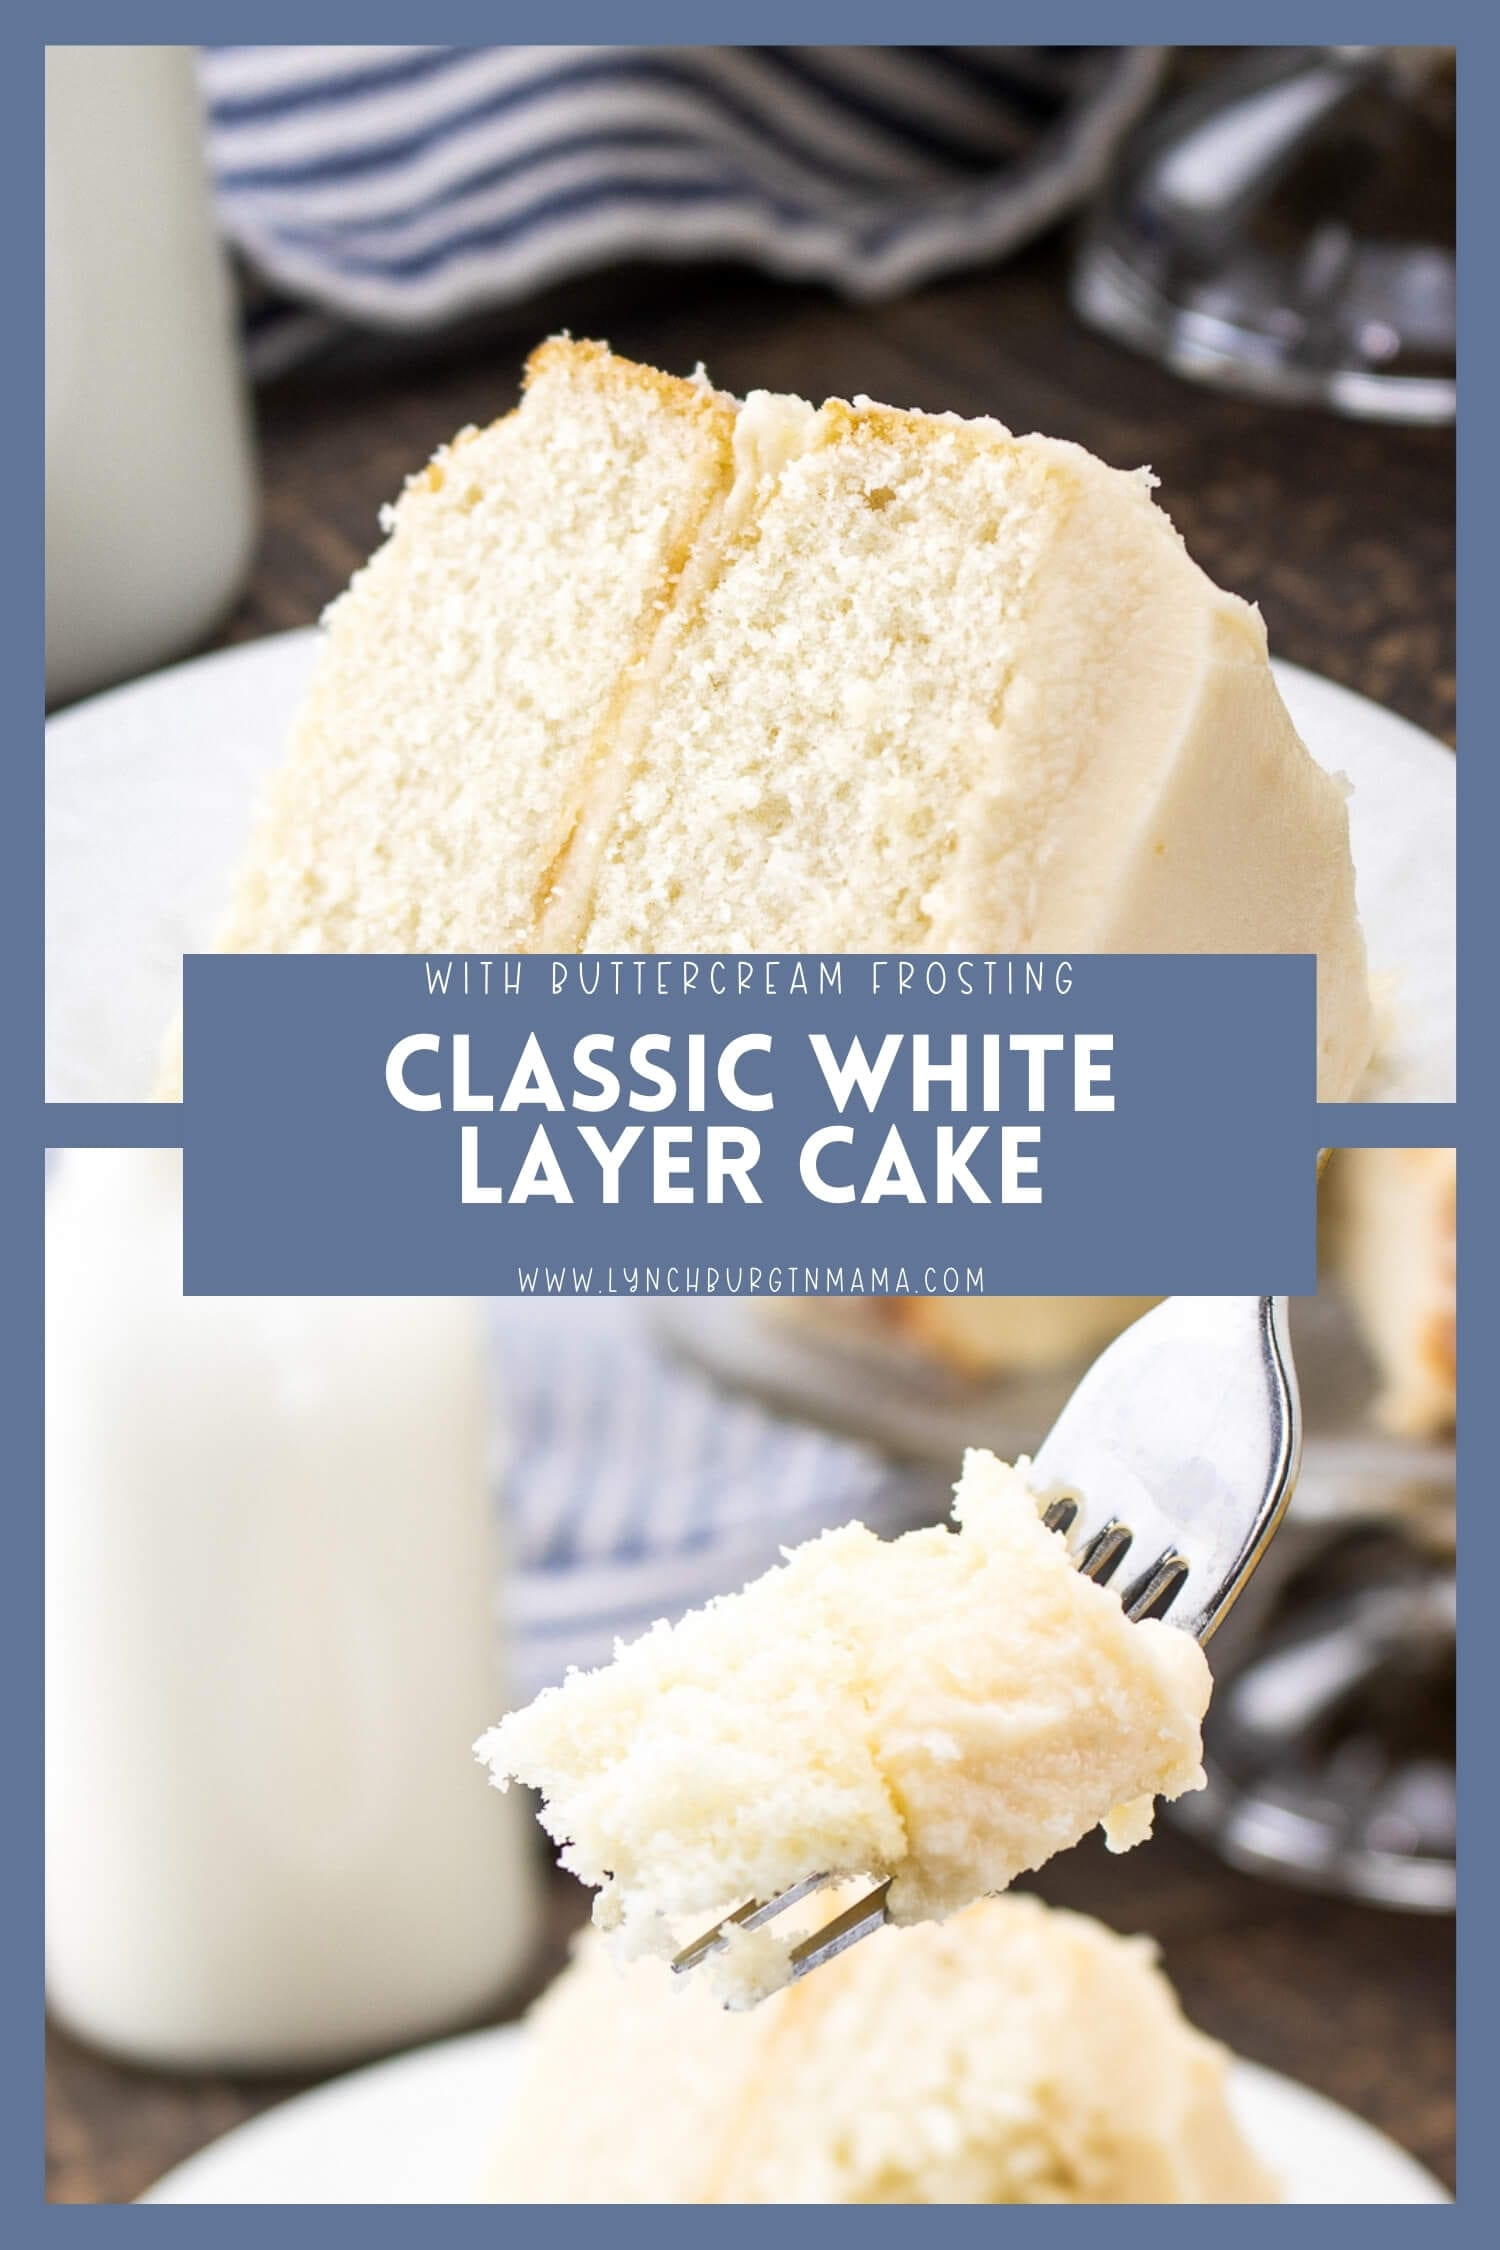 A Classic White Layer Cake is the perfect cake to celebrate any occasion! It's purely decadent when topped with buttercream frosting. Try this sweet recipe for your next special event.